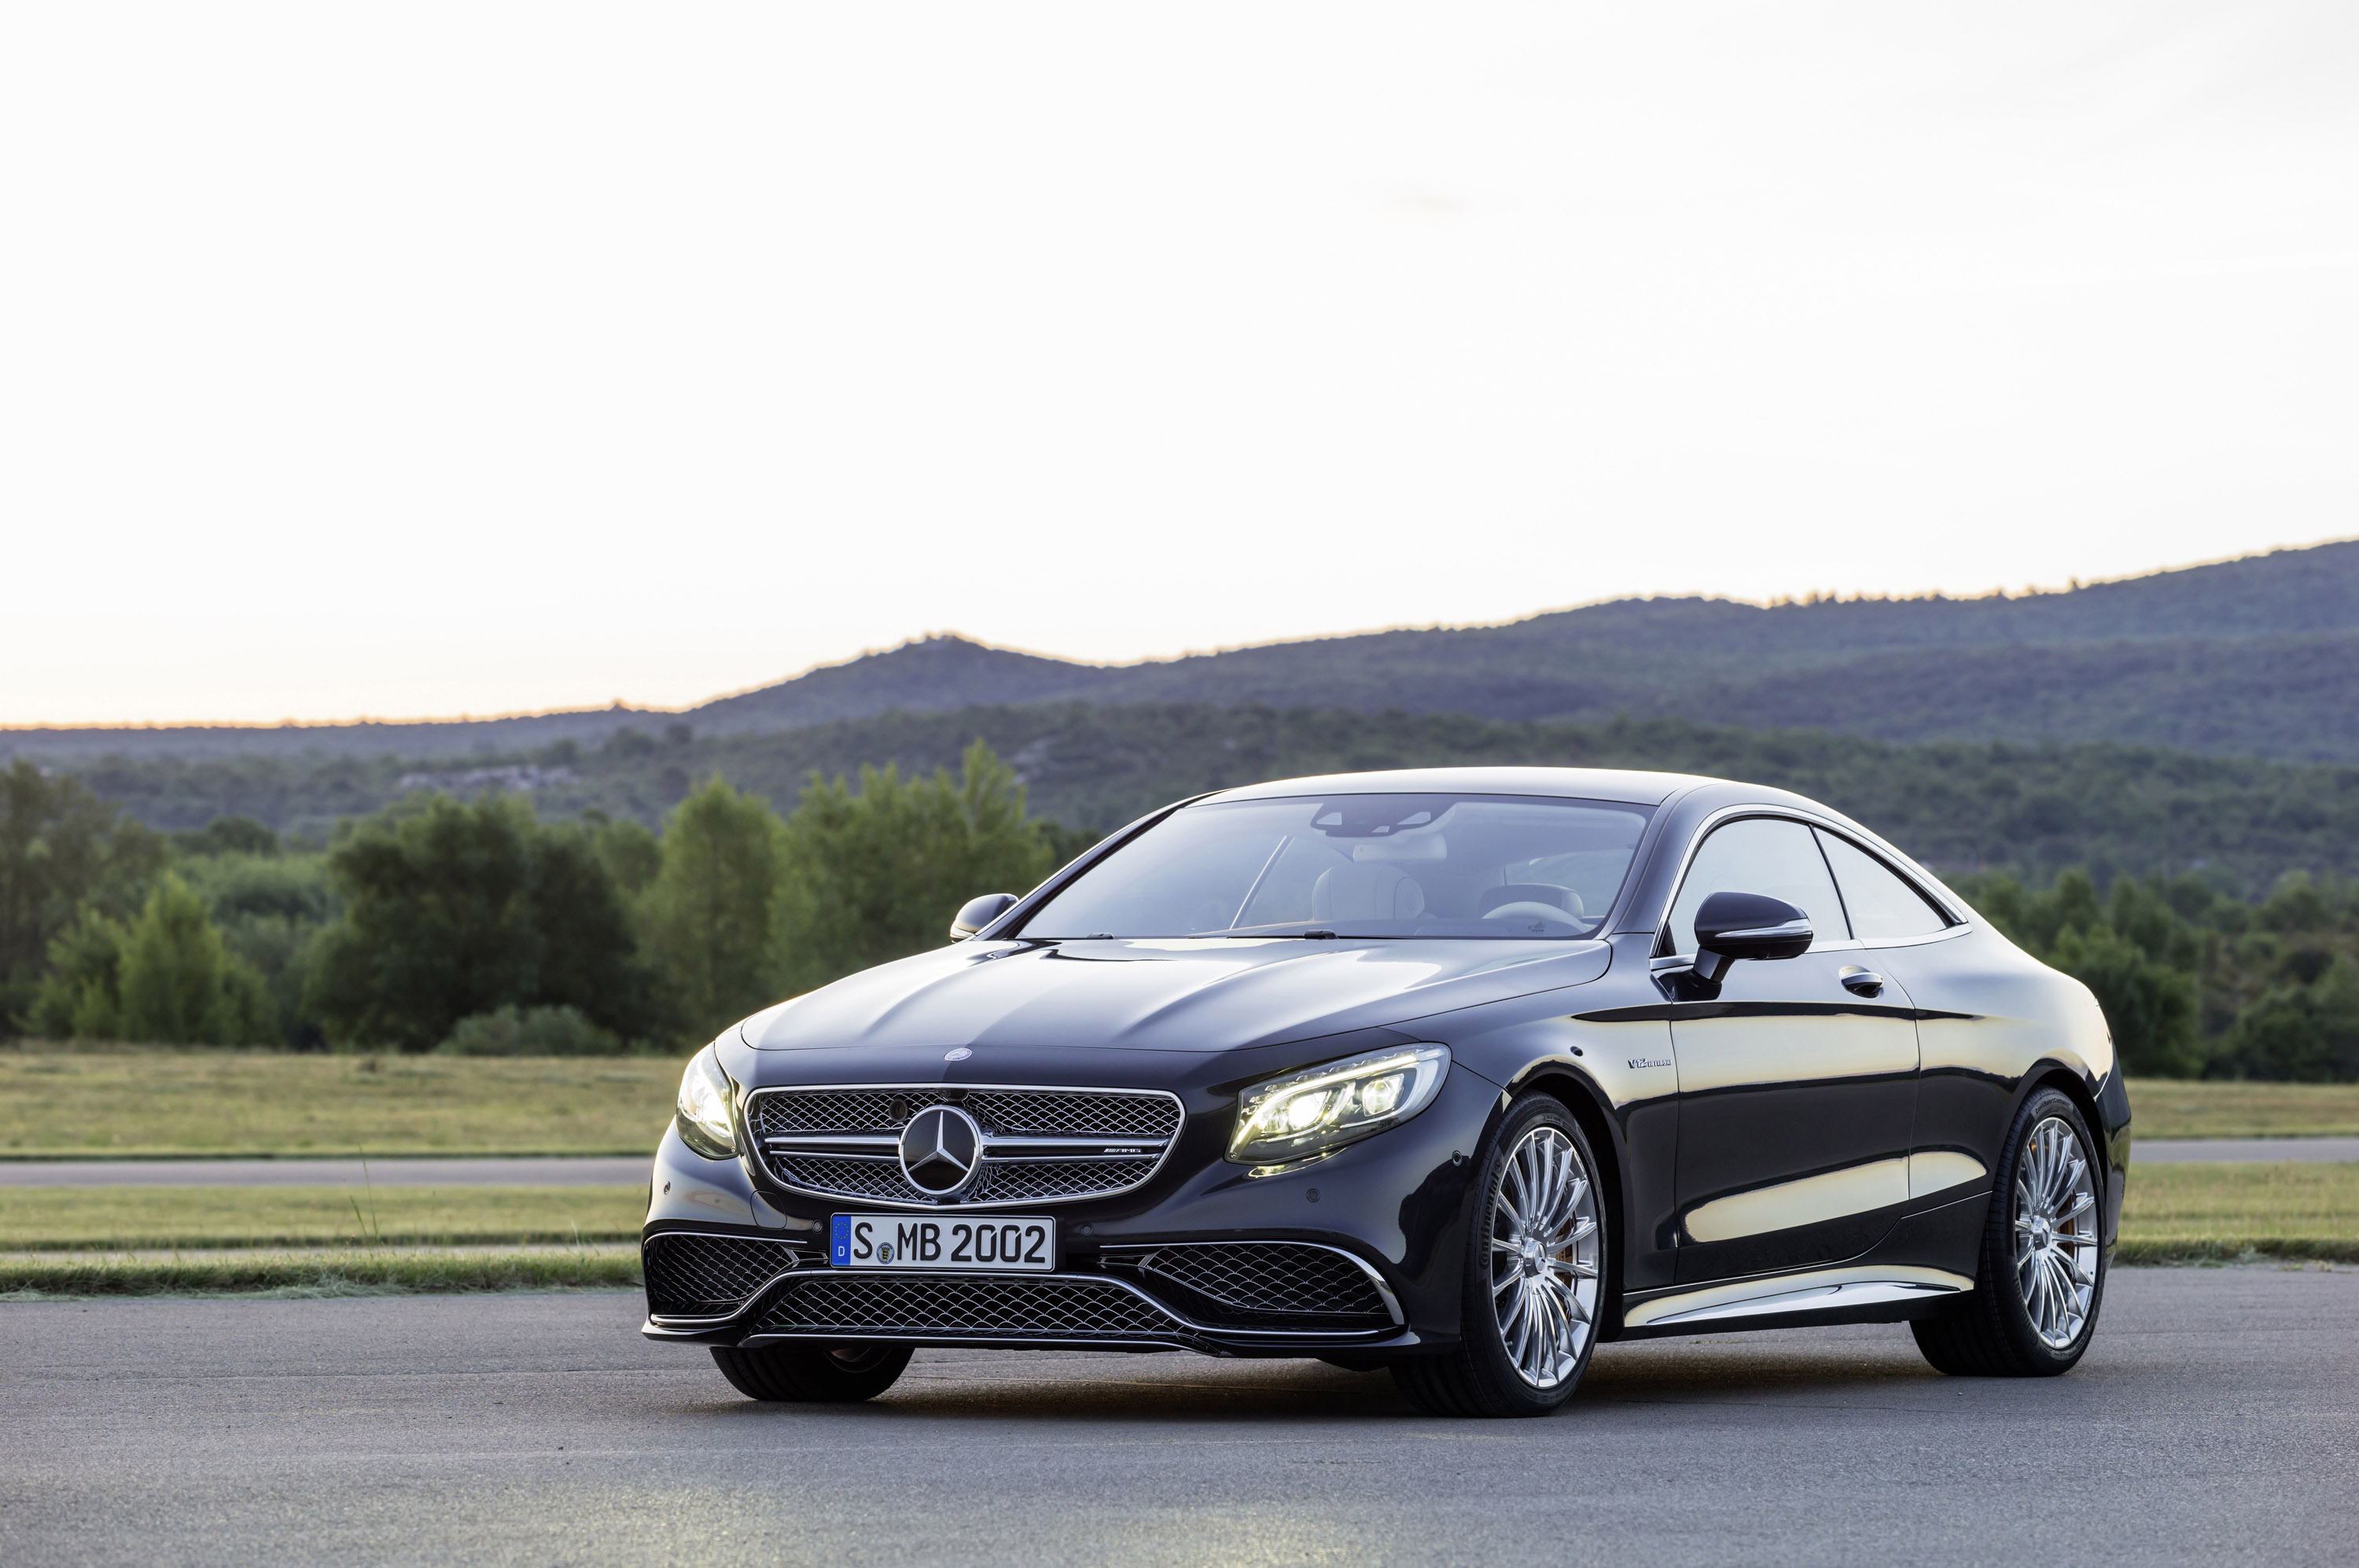 Mercedes-Benz S 65 AMG Coupe photo #1